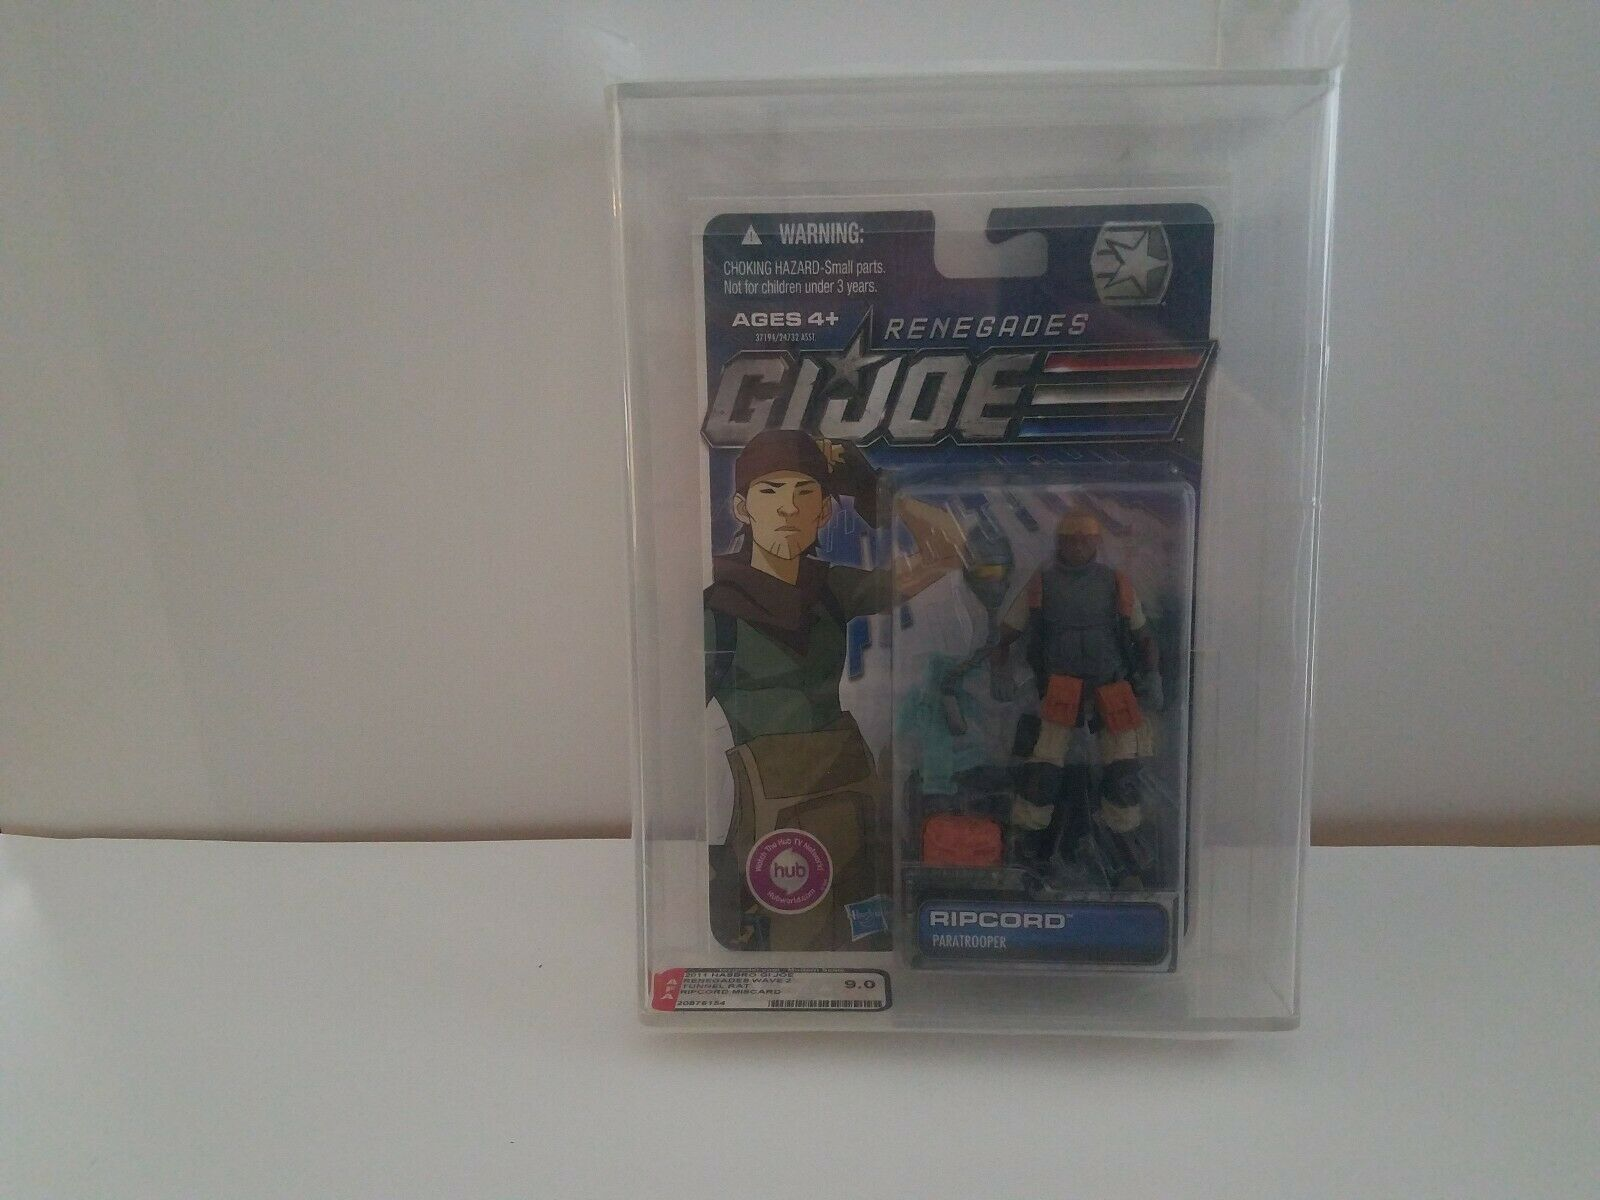 Gi Joe AFA 9.0 Error Misscard Ripcord on Tunnel Rat Card Renegades 30th POC